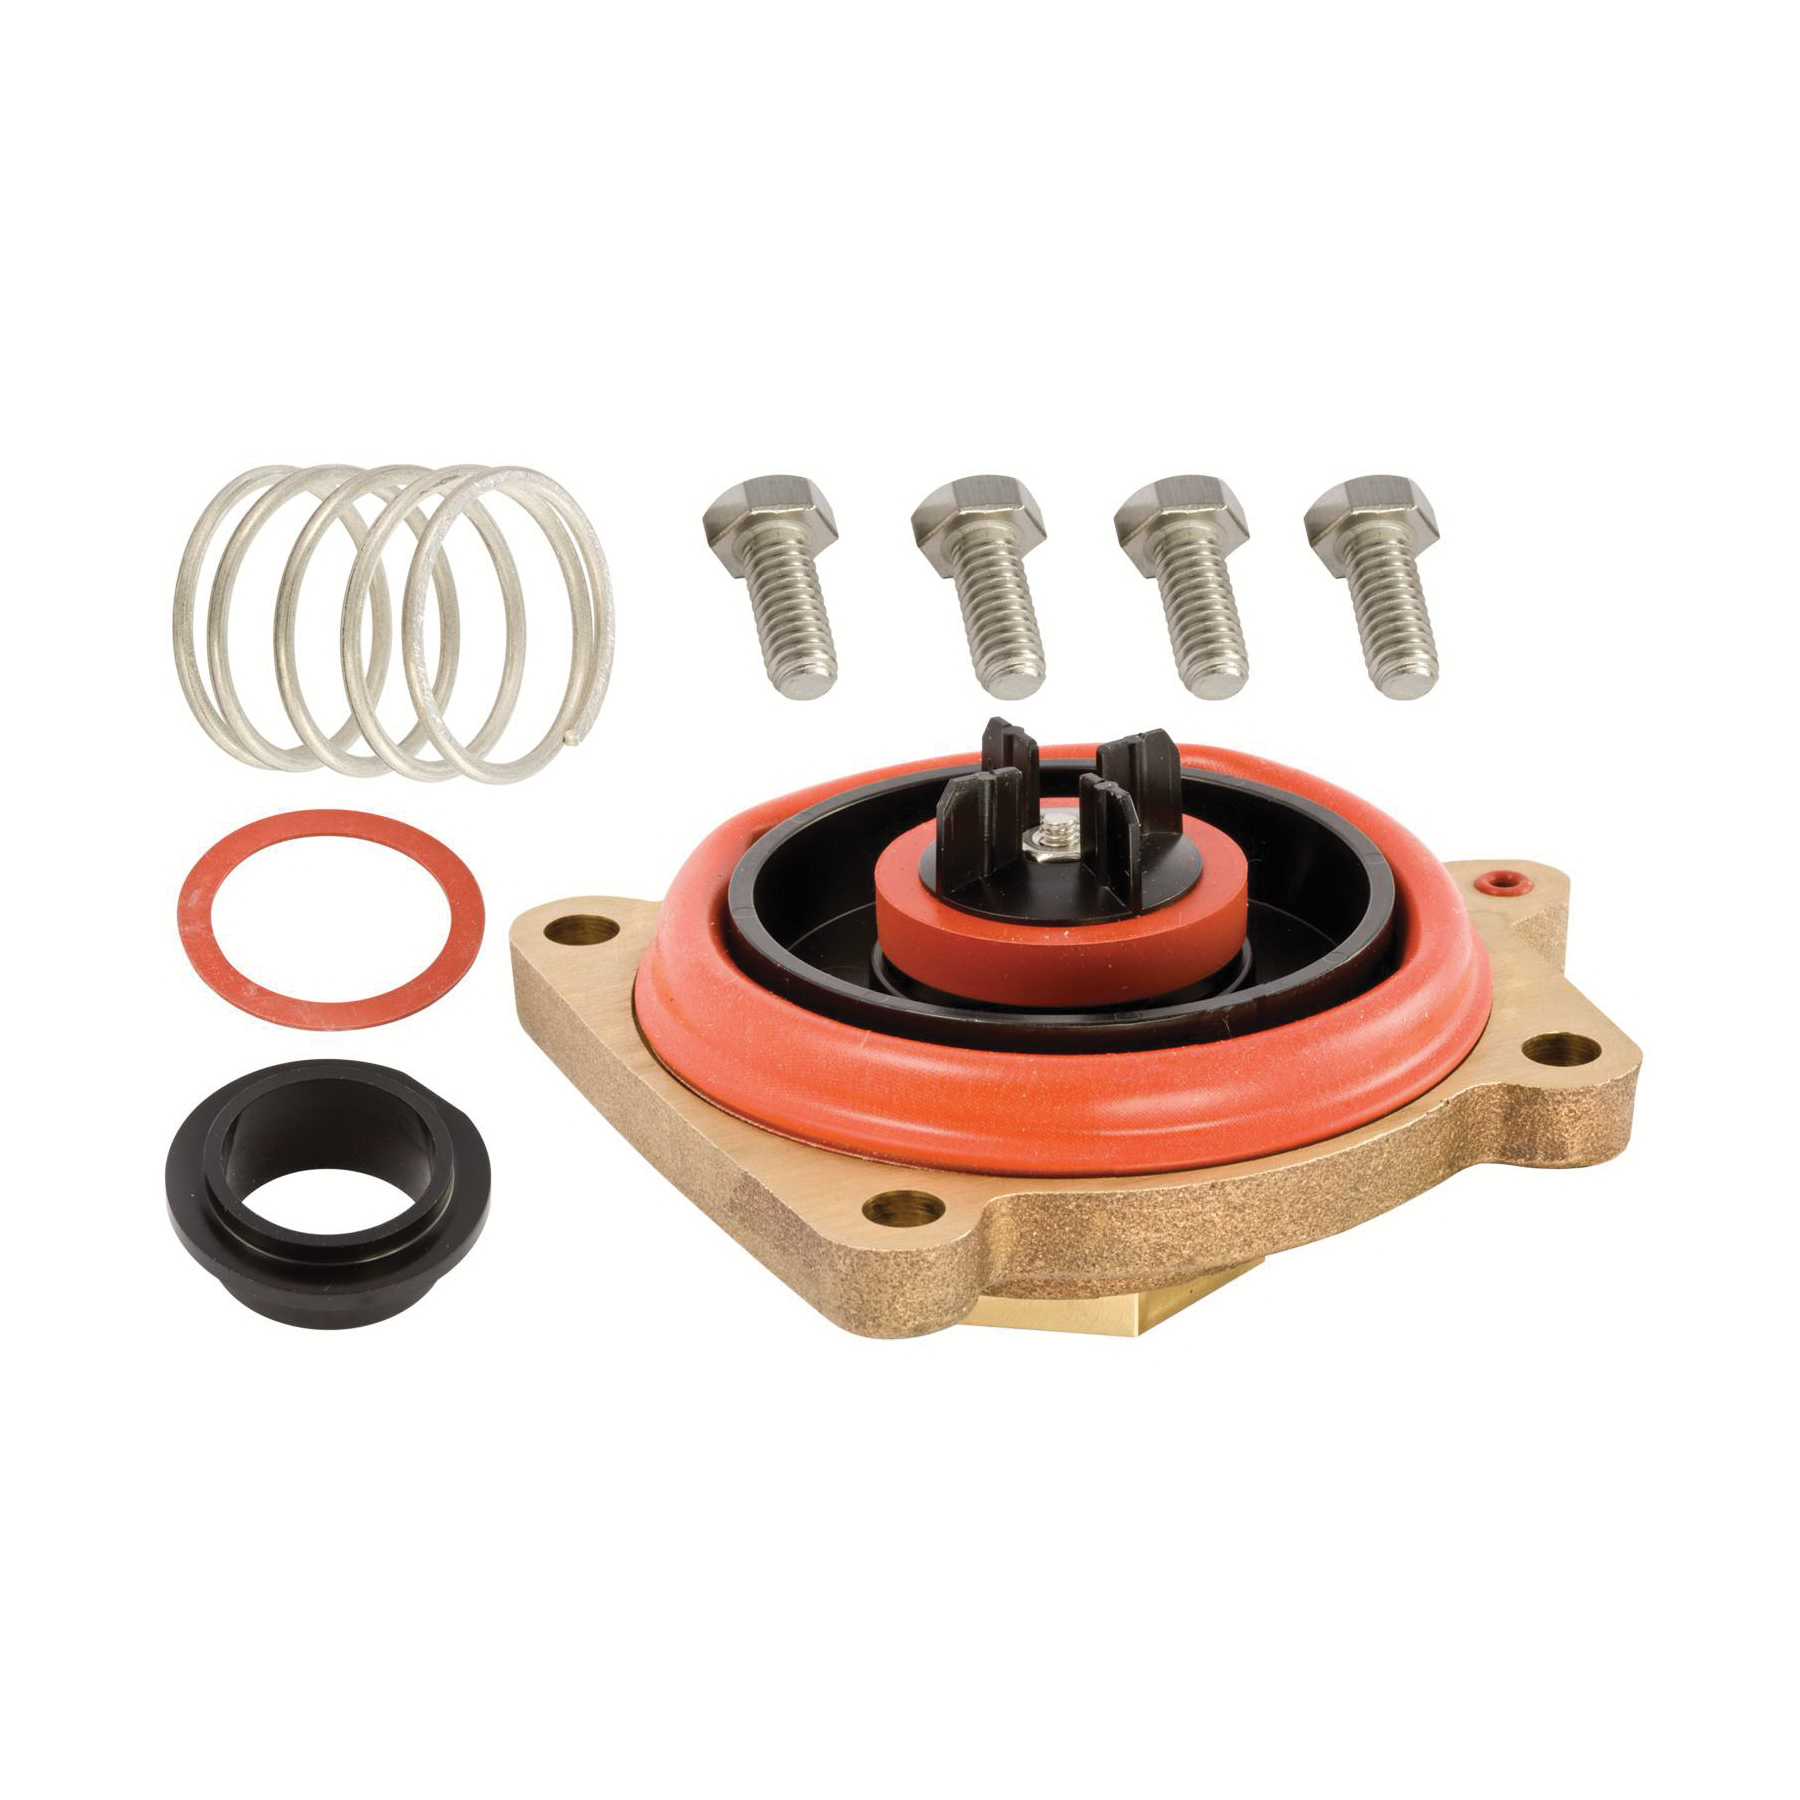 Febco® 905354 Relief Valve Kit, For Use With 860/860U 1-1/4 to 2 in Reduced Pressure Zone Assemblies